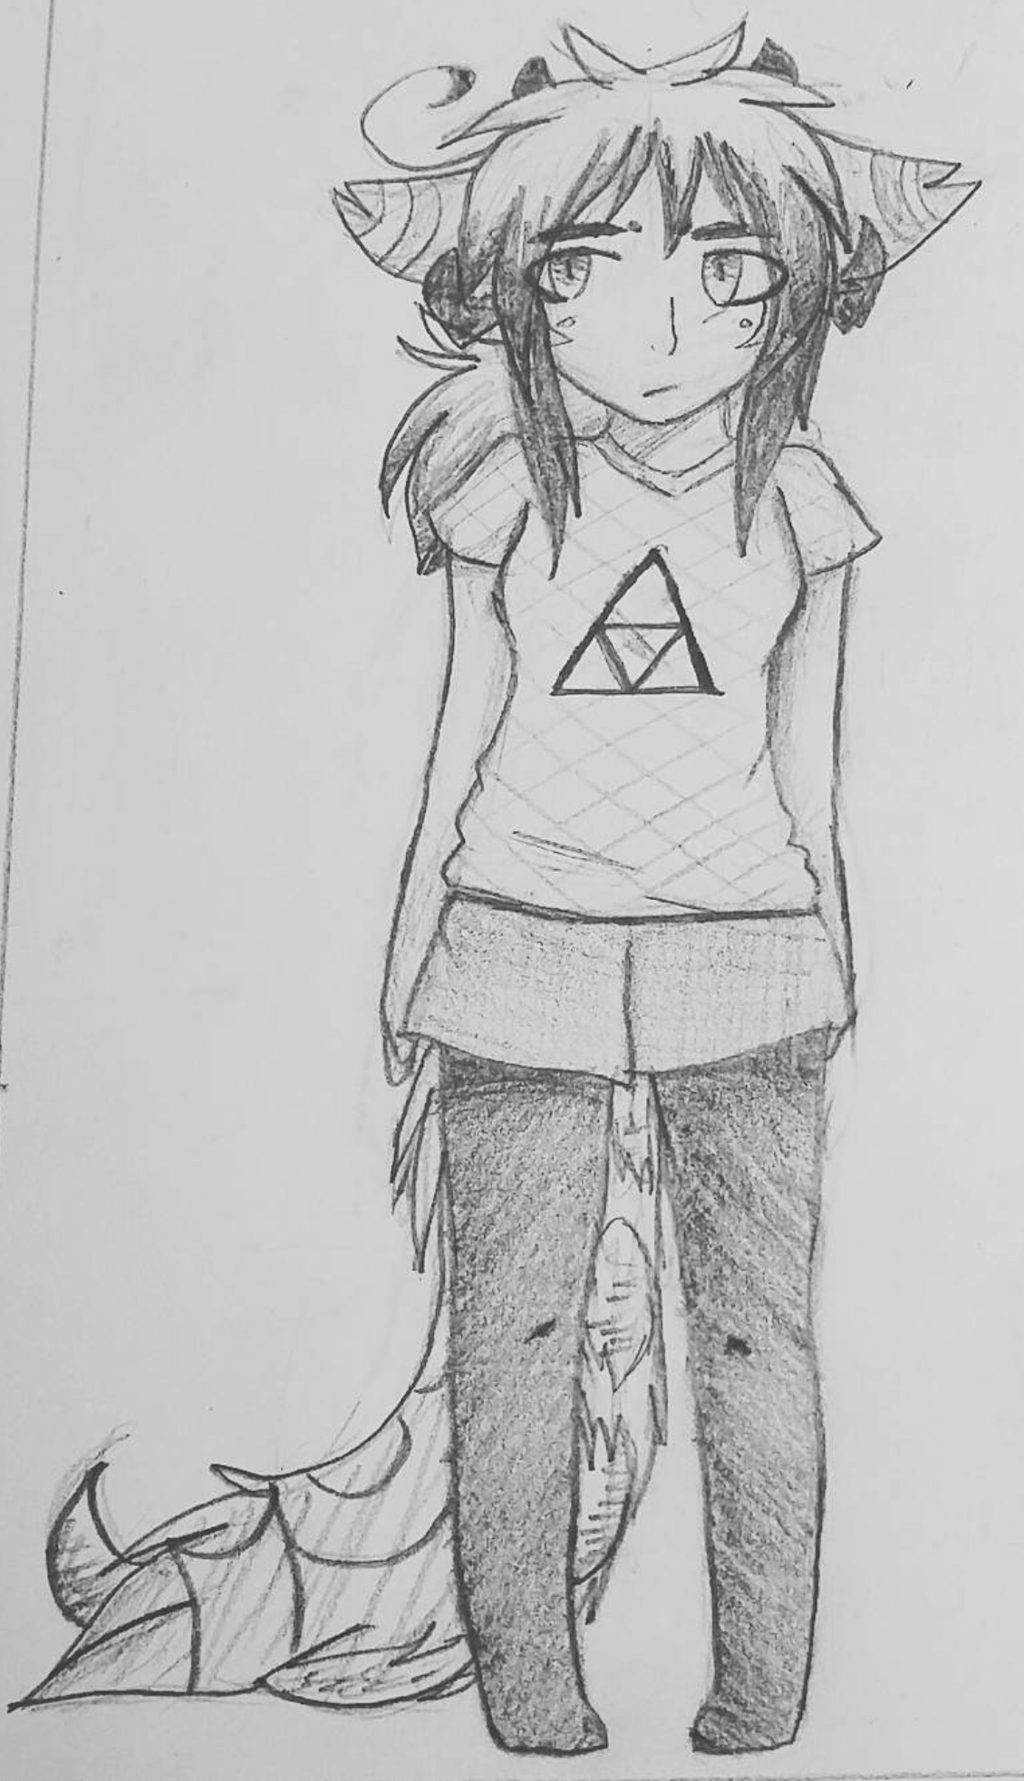 Zwelxia In Casual Clothing by Zwelx